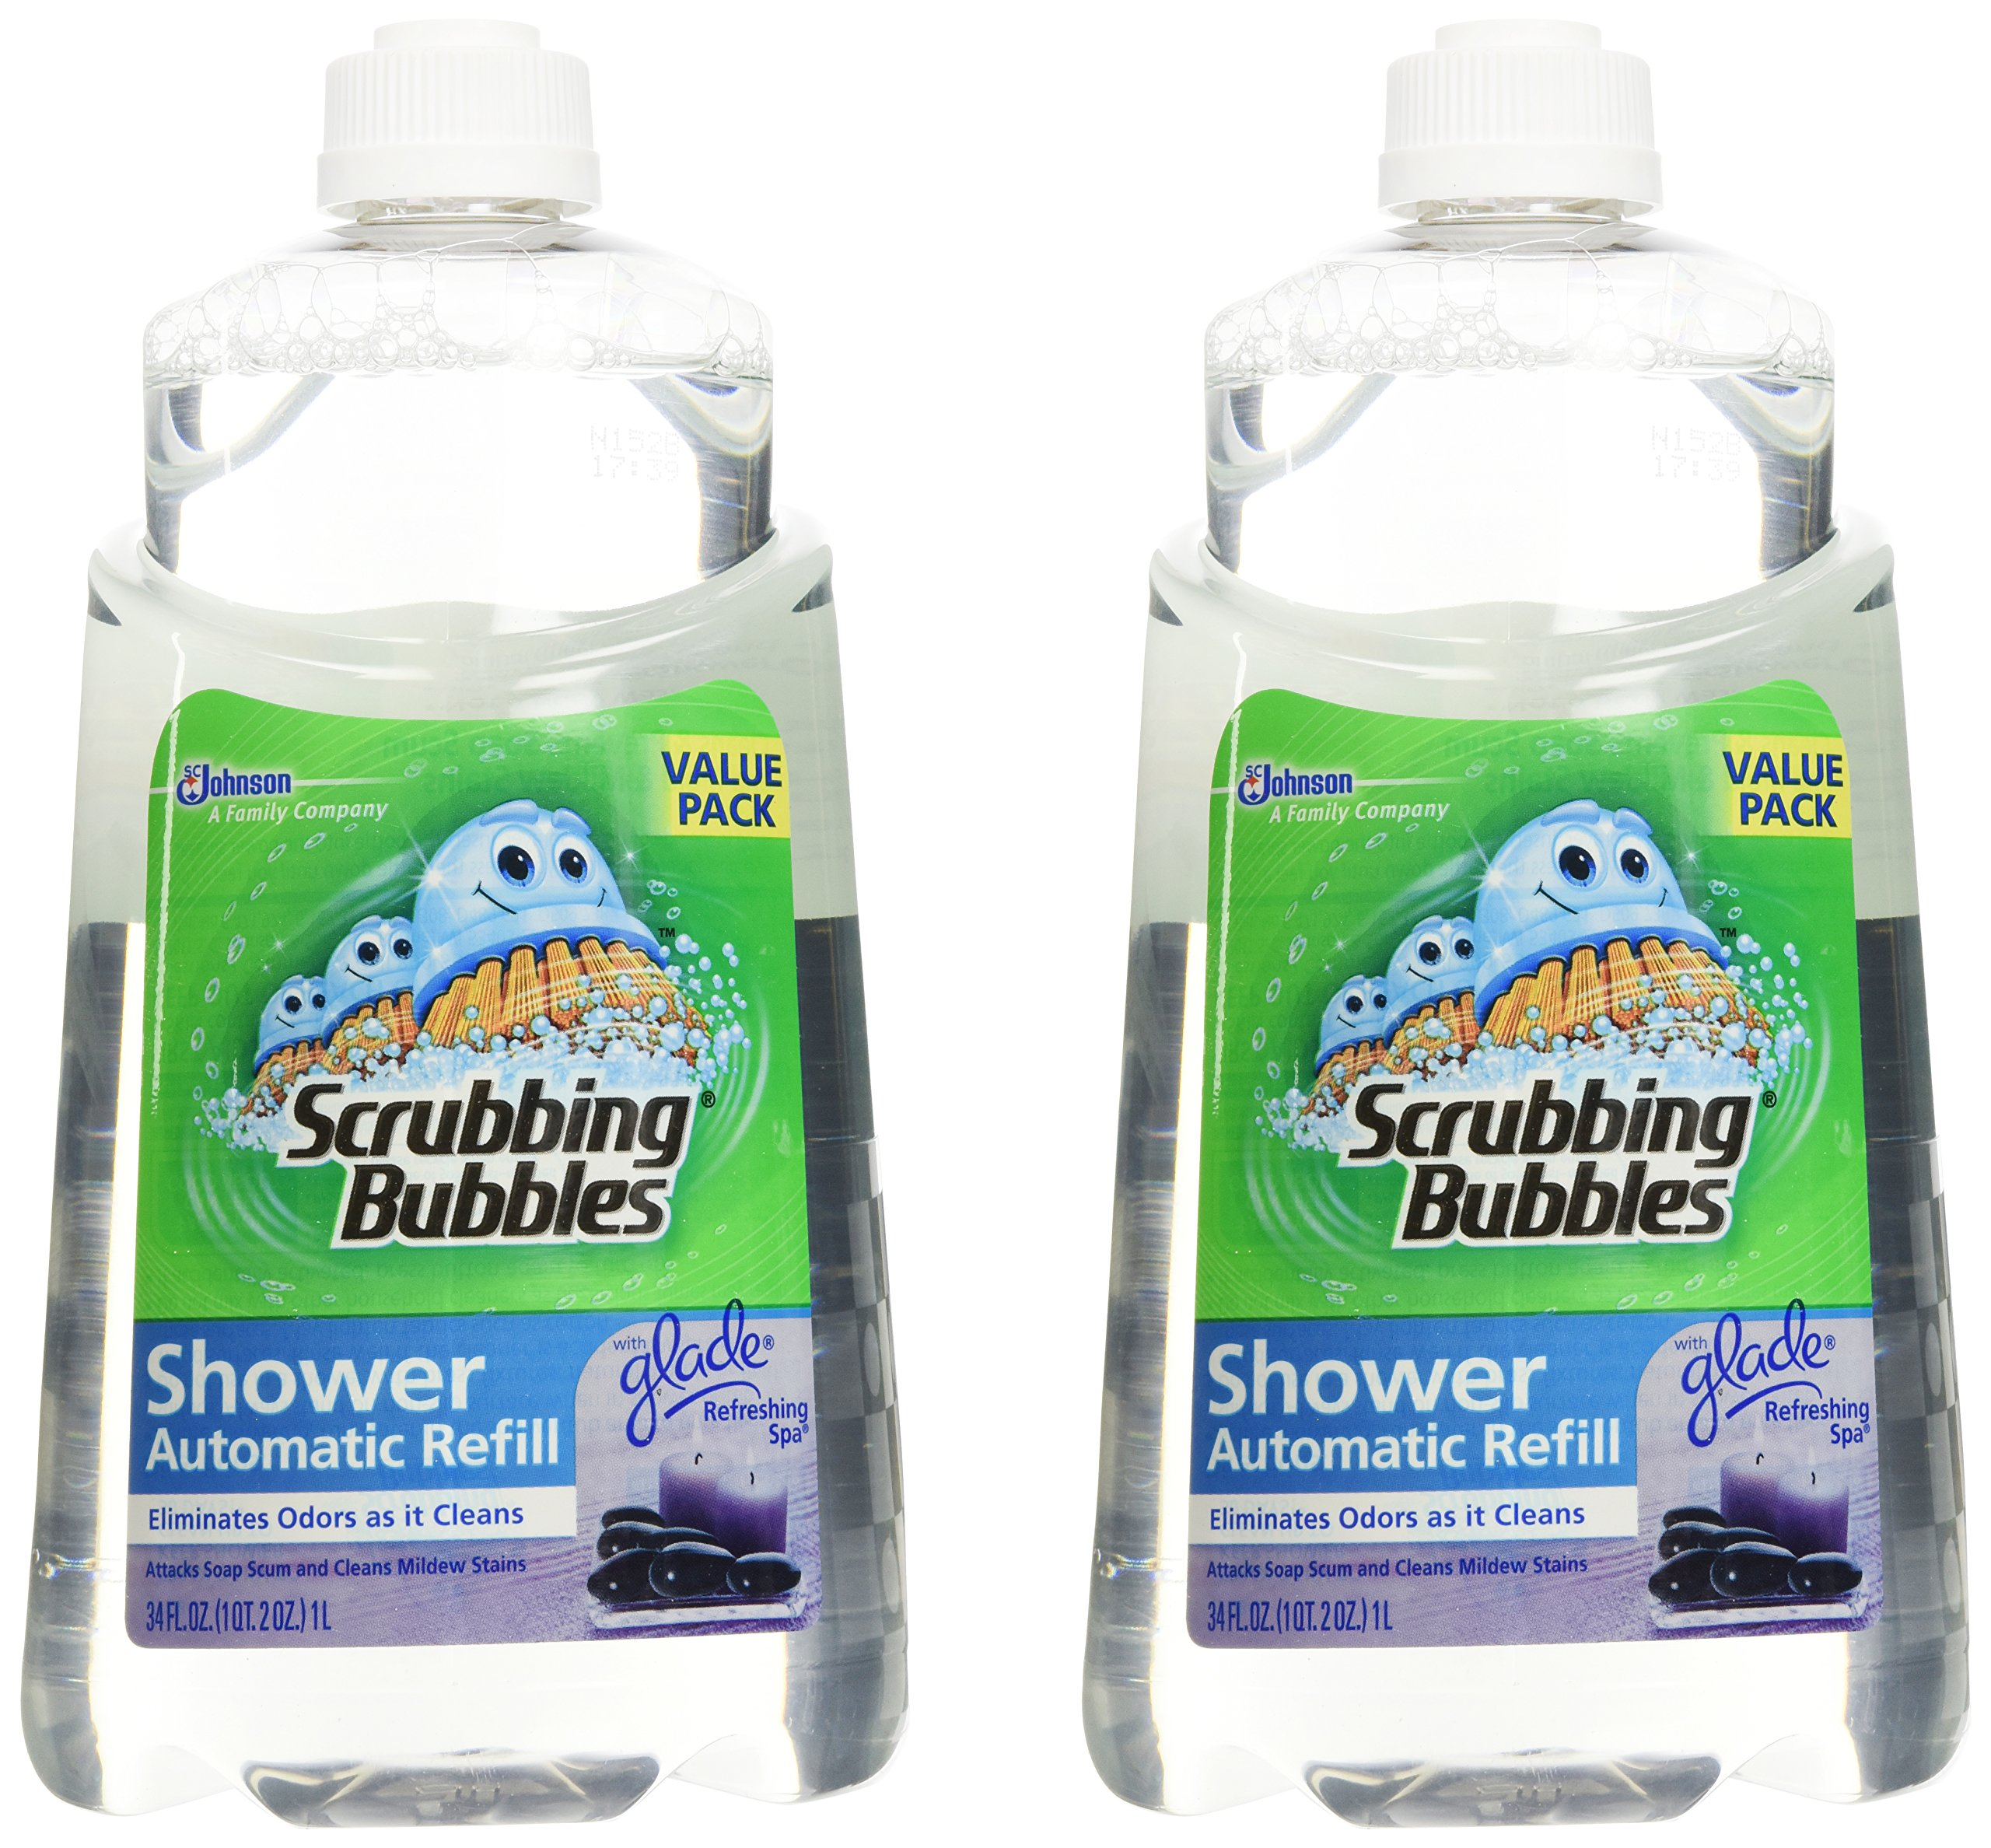 Scrubbing Bubbles Automatic Shower Cleaner Refill - Refreshing Spa - 34 oz - 2 pk by Scrubbing Bubbles